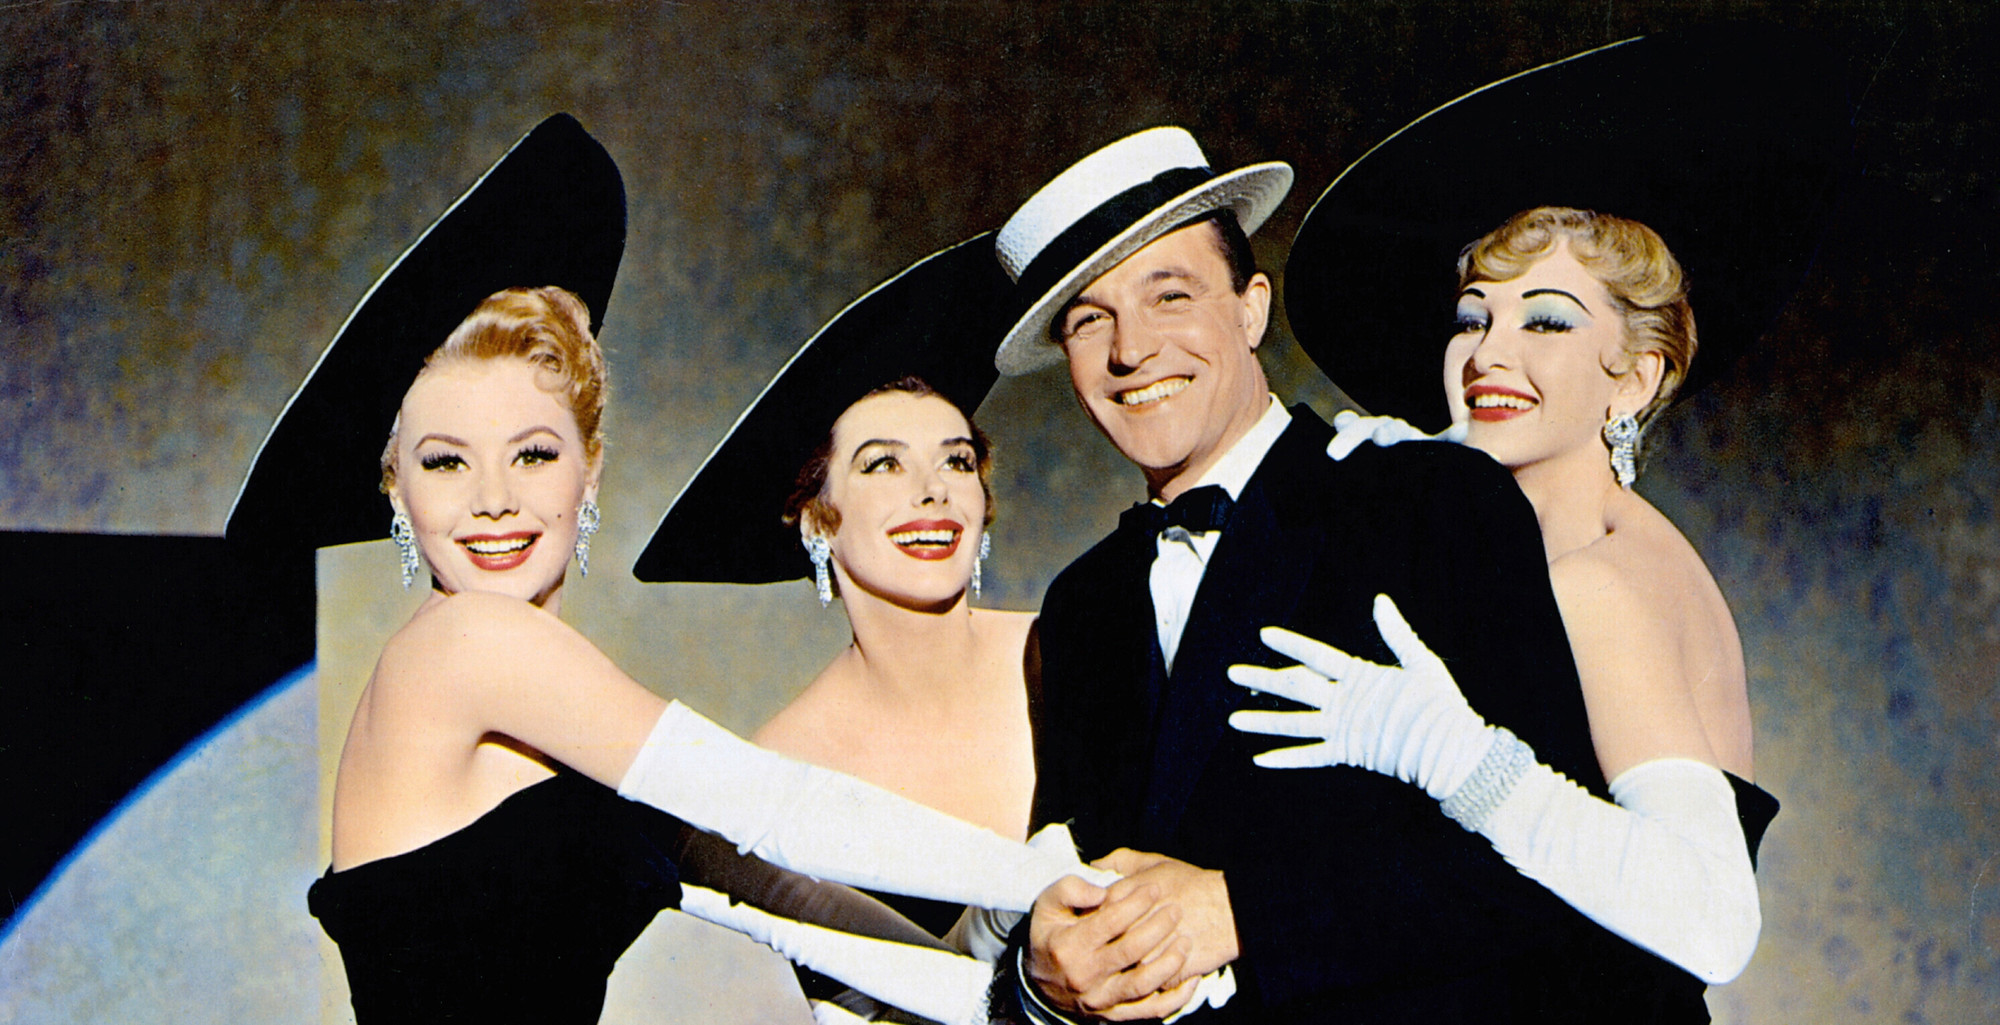 Les Girls. 1957. Directed by George Cukor   MoMA